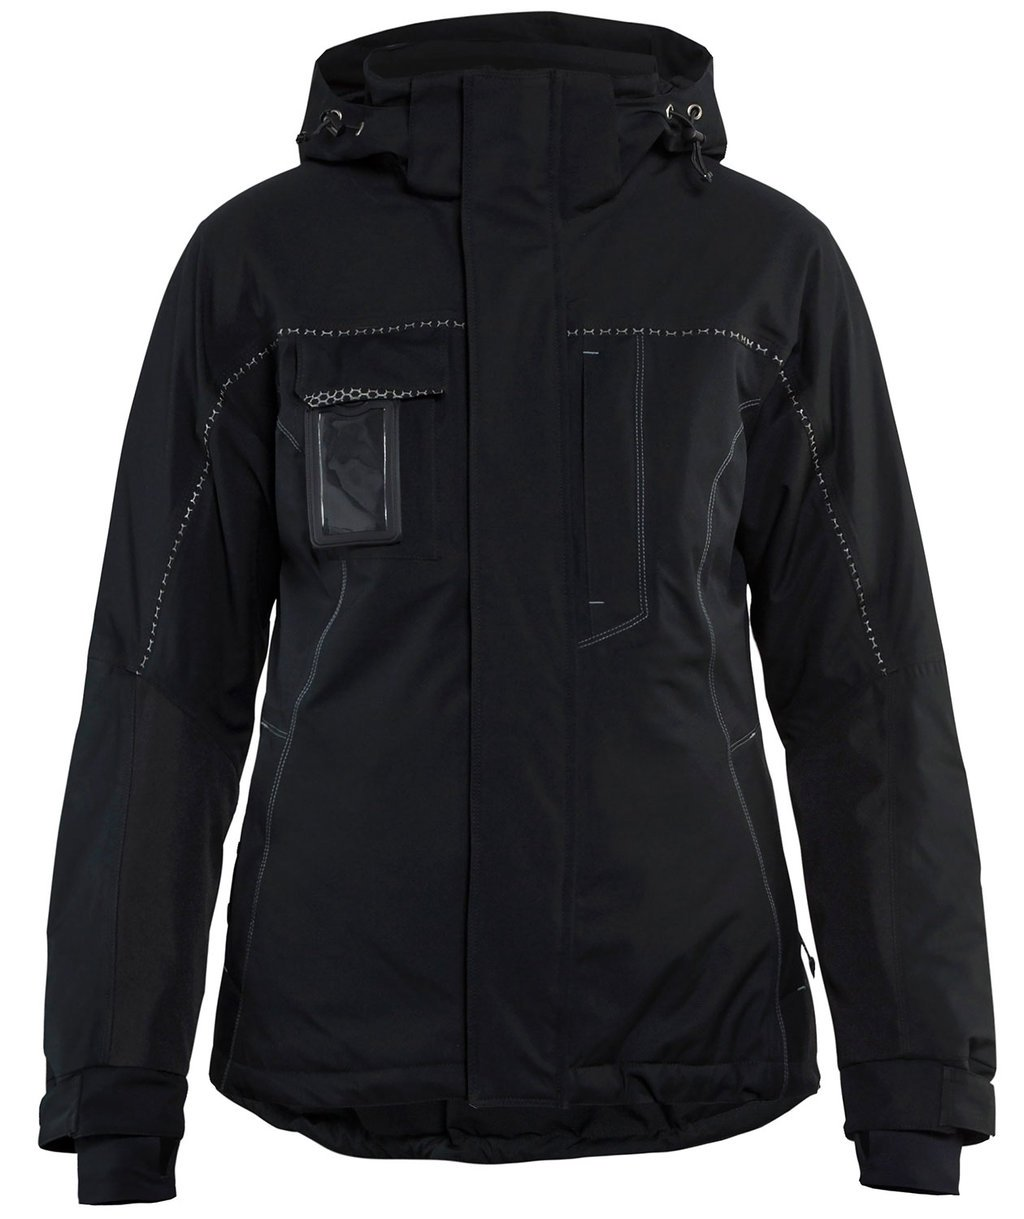 Blåkläder women's winter jacket, Black